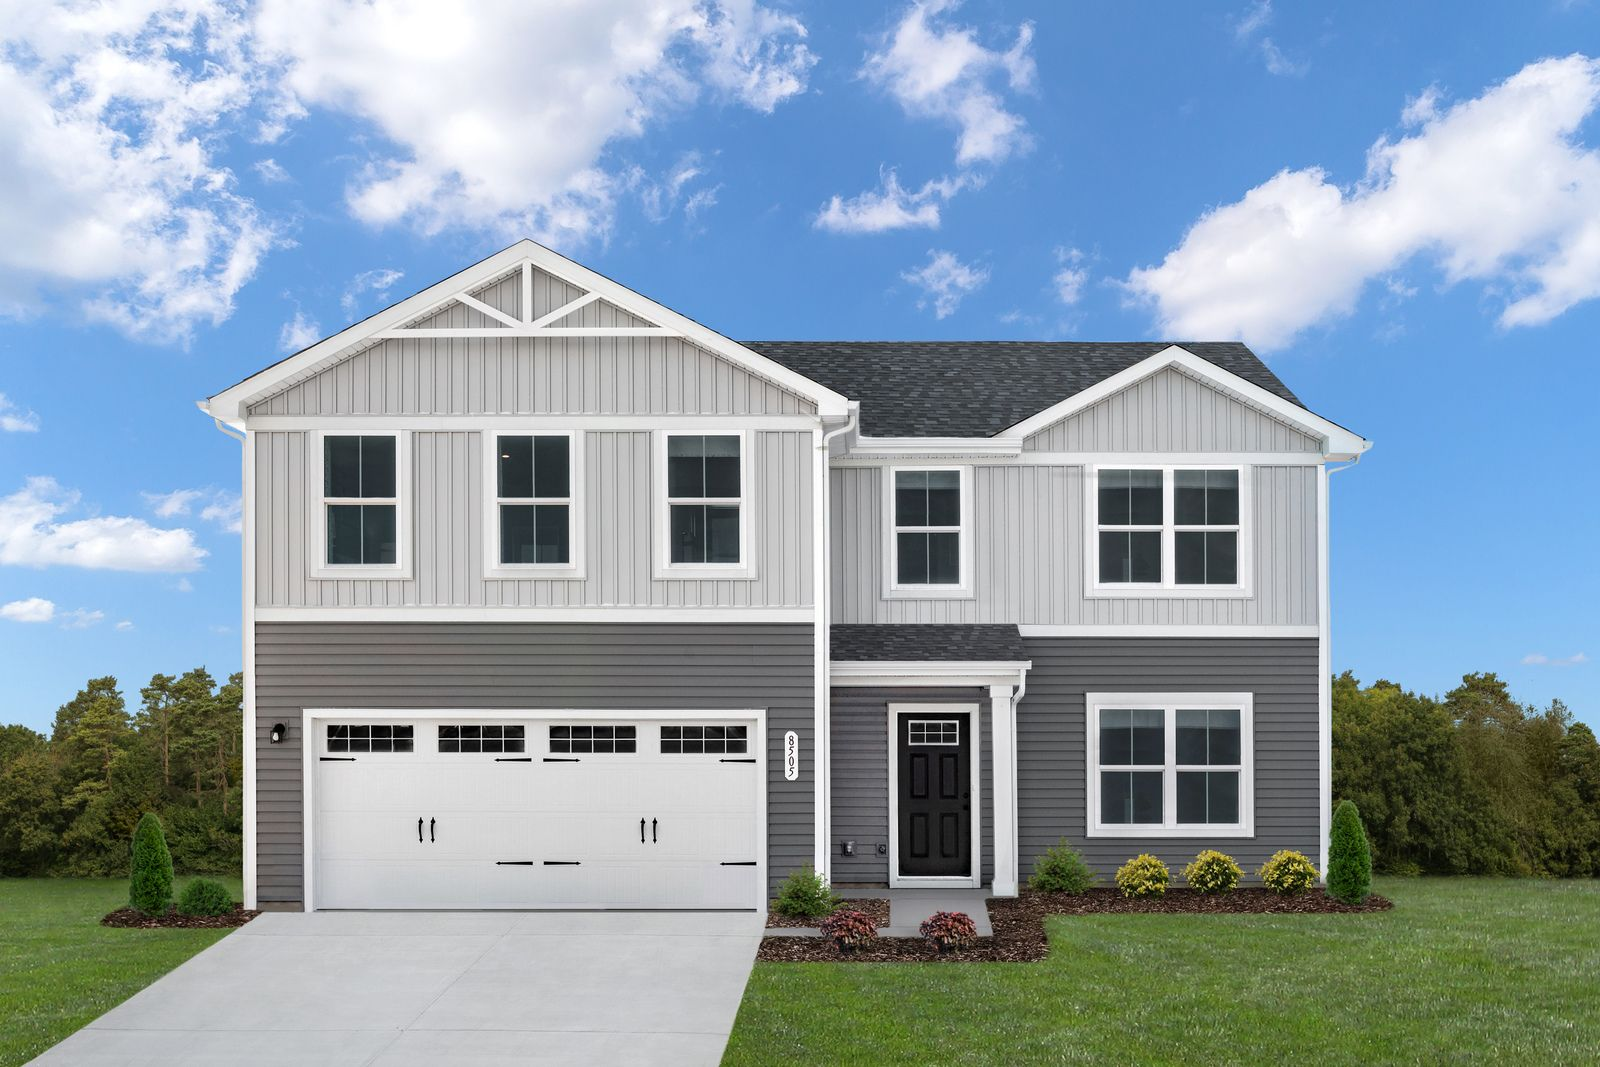 The perfect mixture of ranch and 2-story plans:With ranch and 2-story plans, all with cottage elevations, the streetscape at Barrington Creek will create a community you are proud to call home!